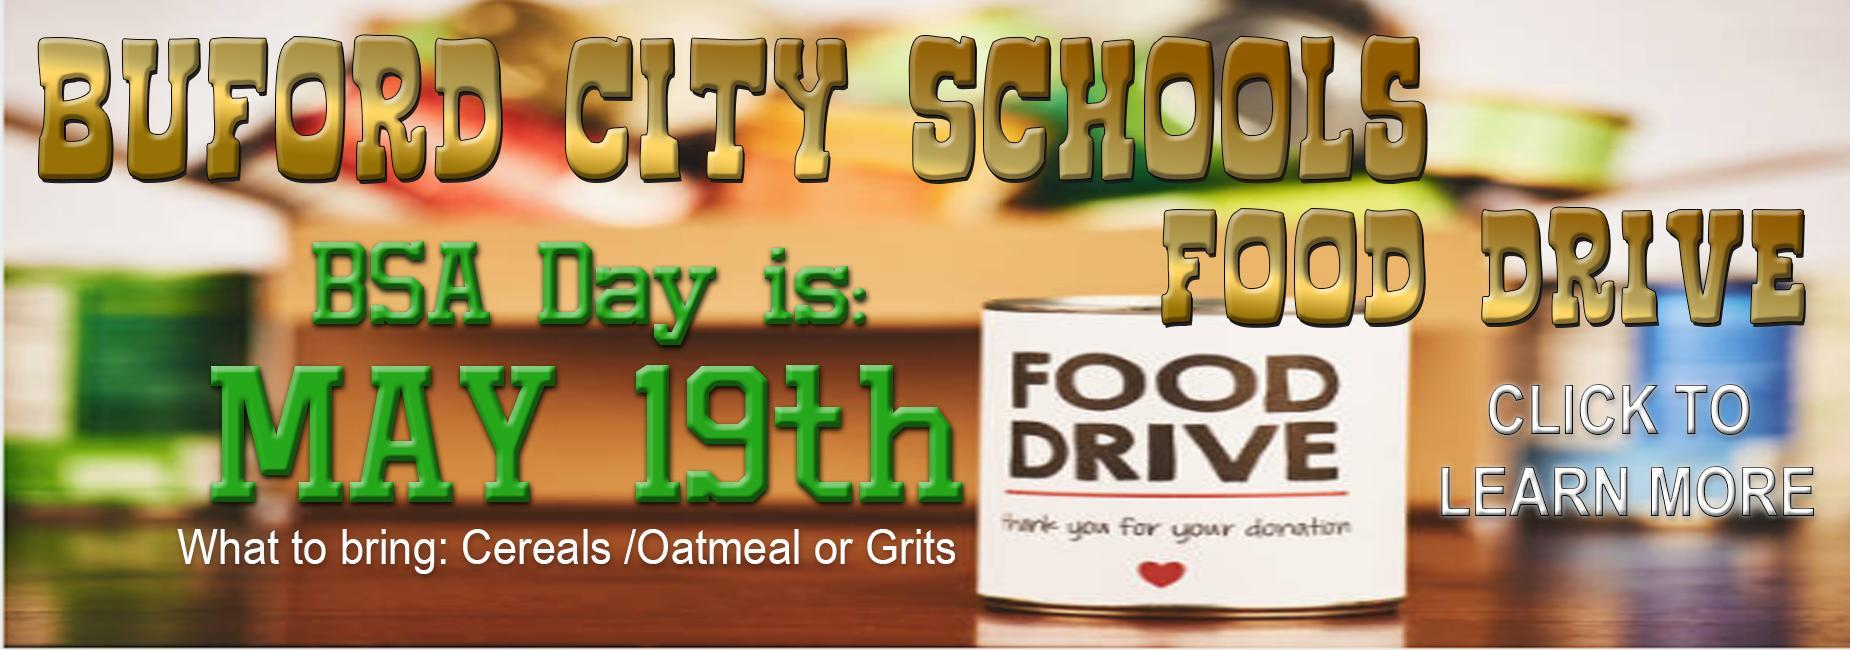 Food drive click to learn more